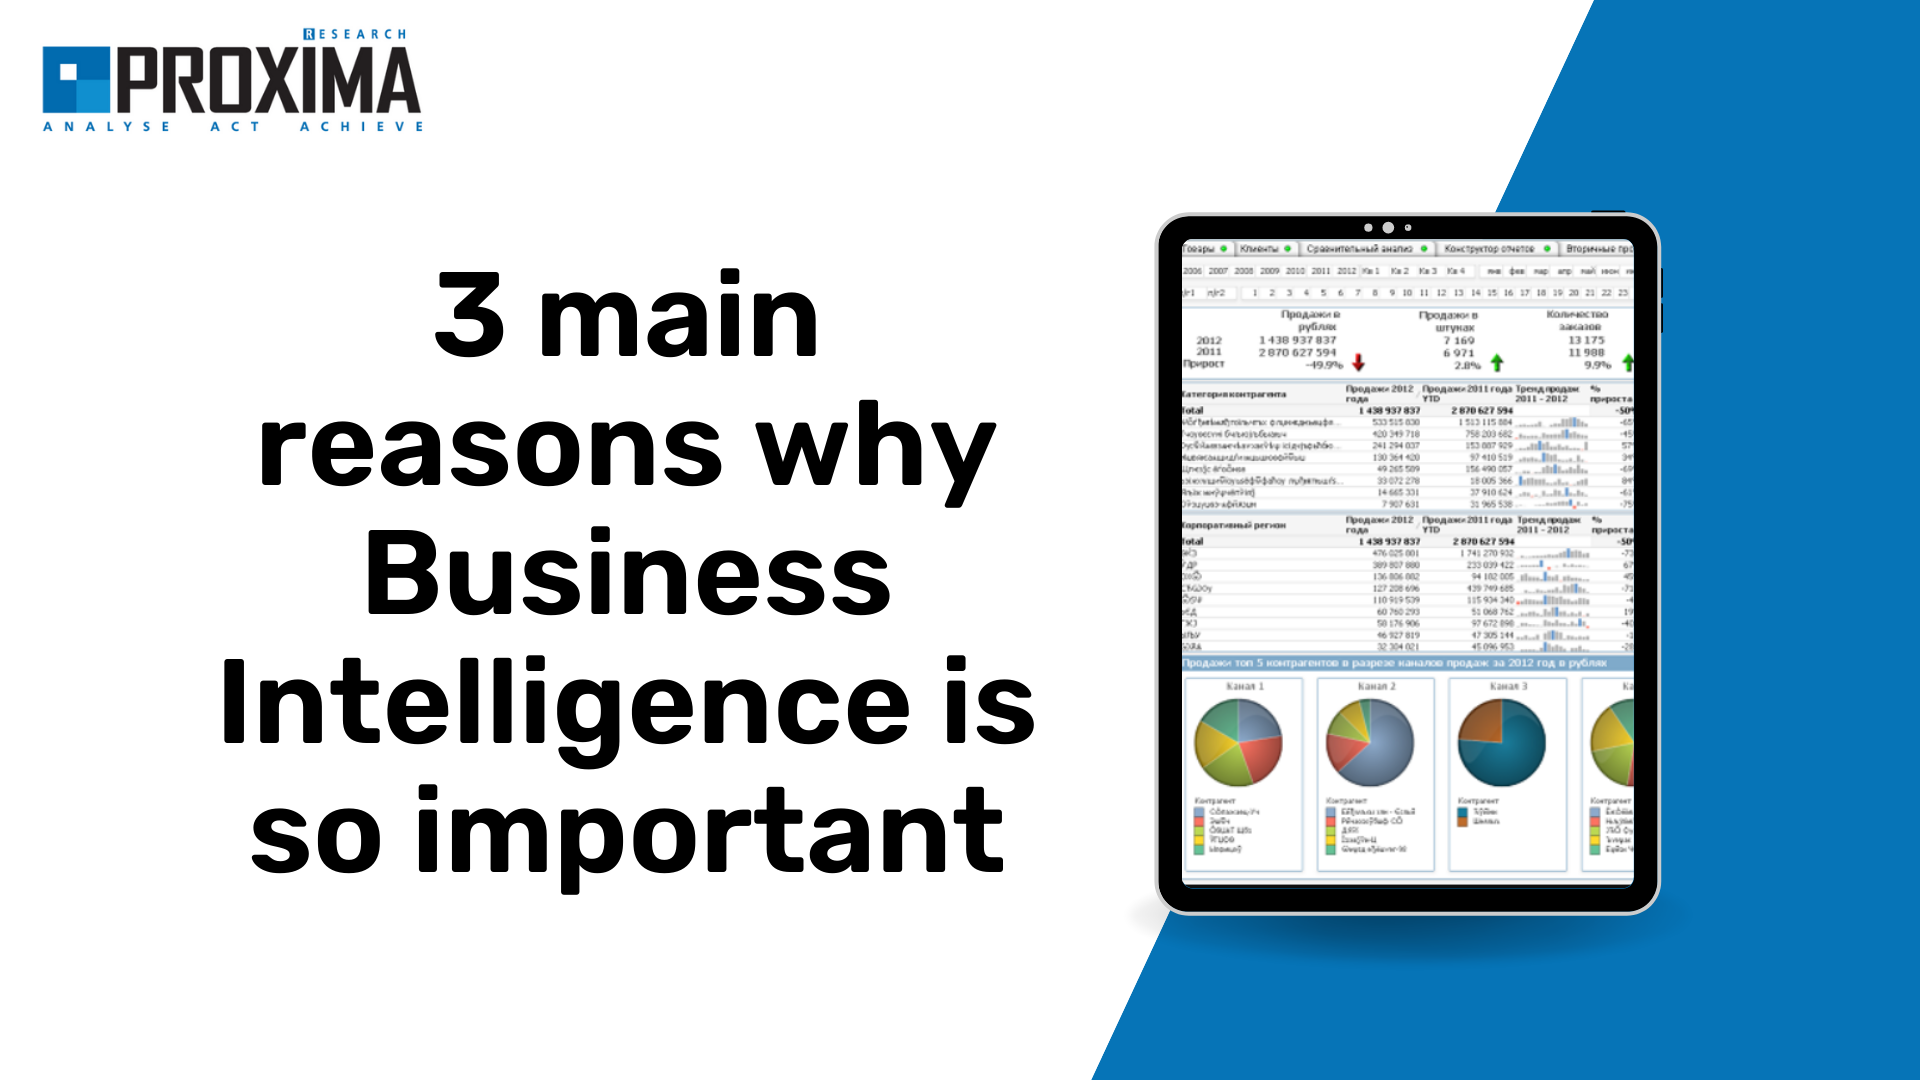 3 main reasons why Business Intelligence is so important